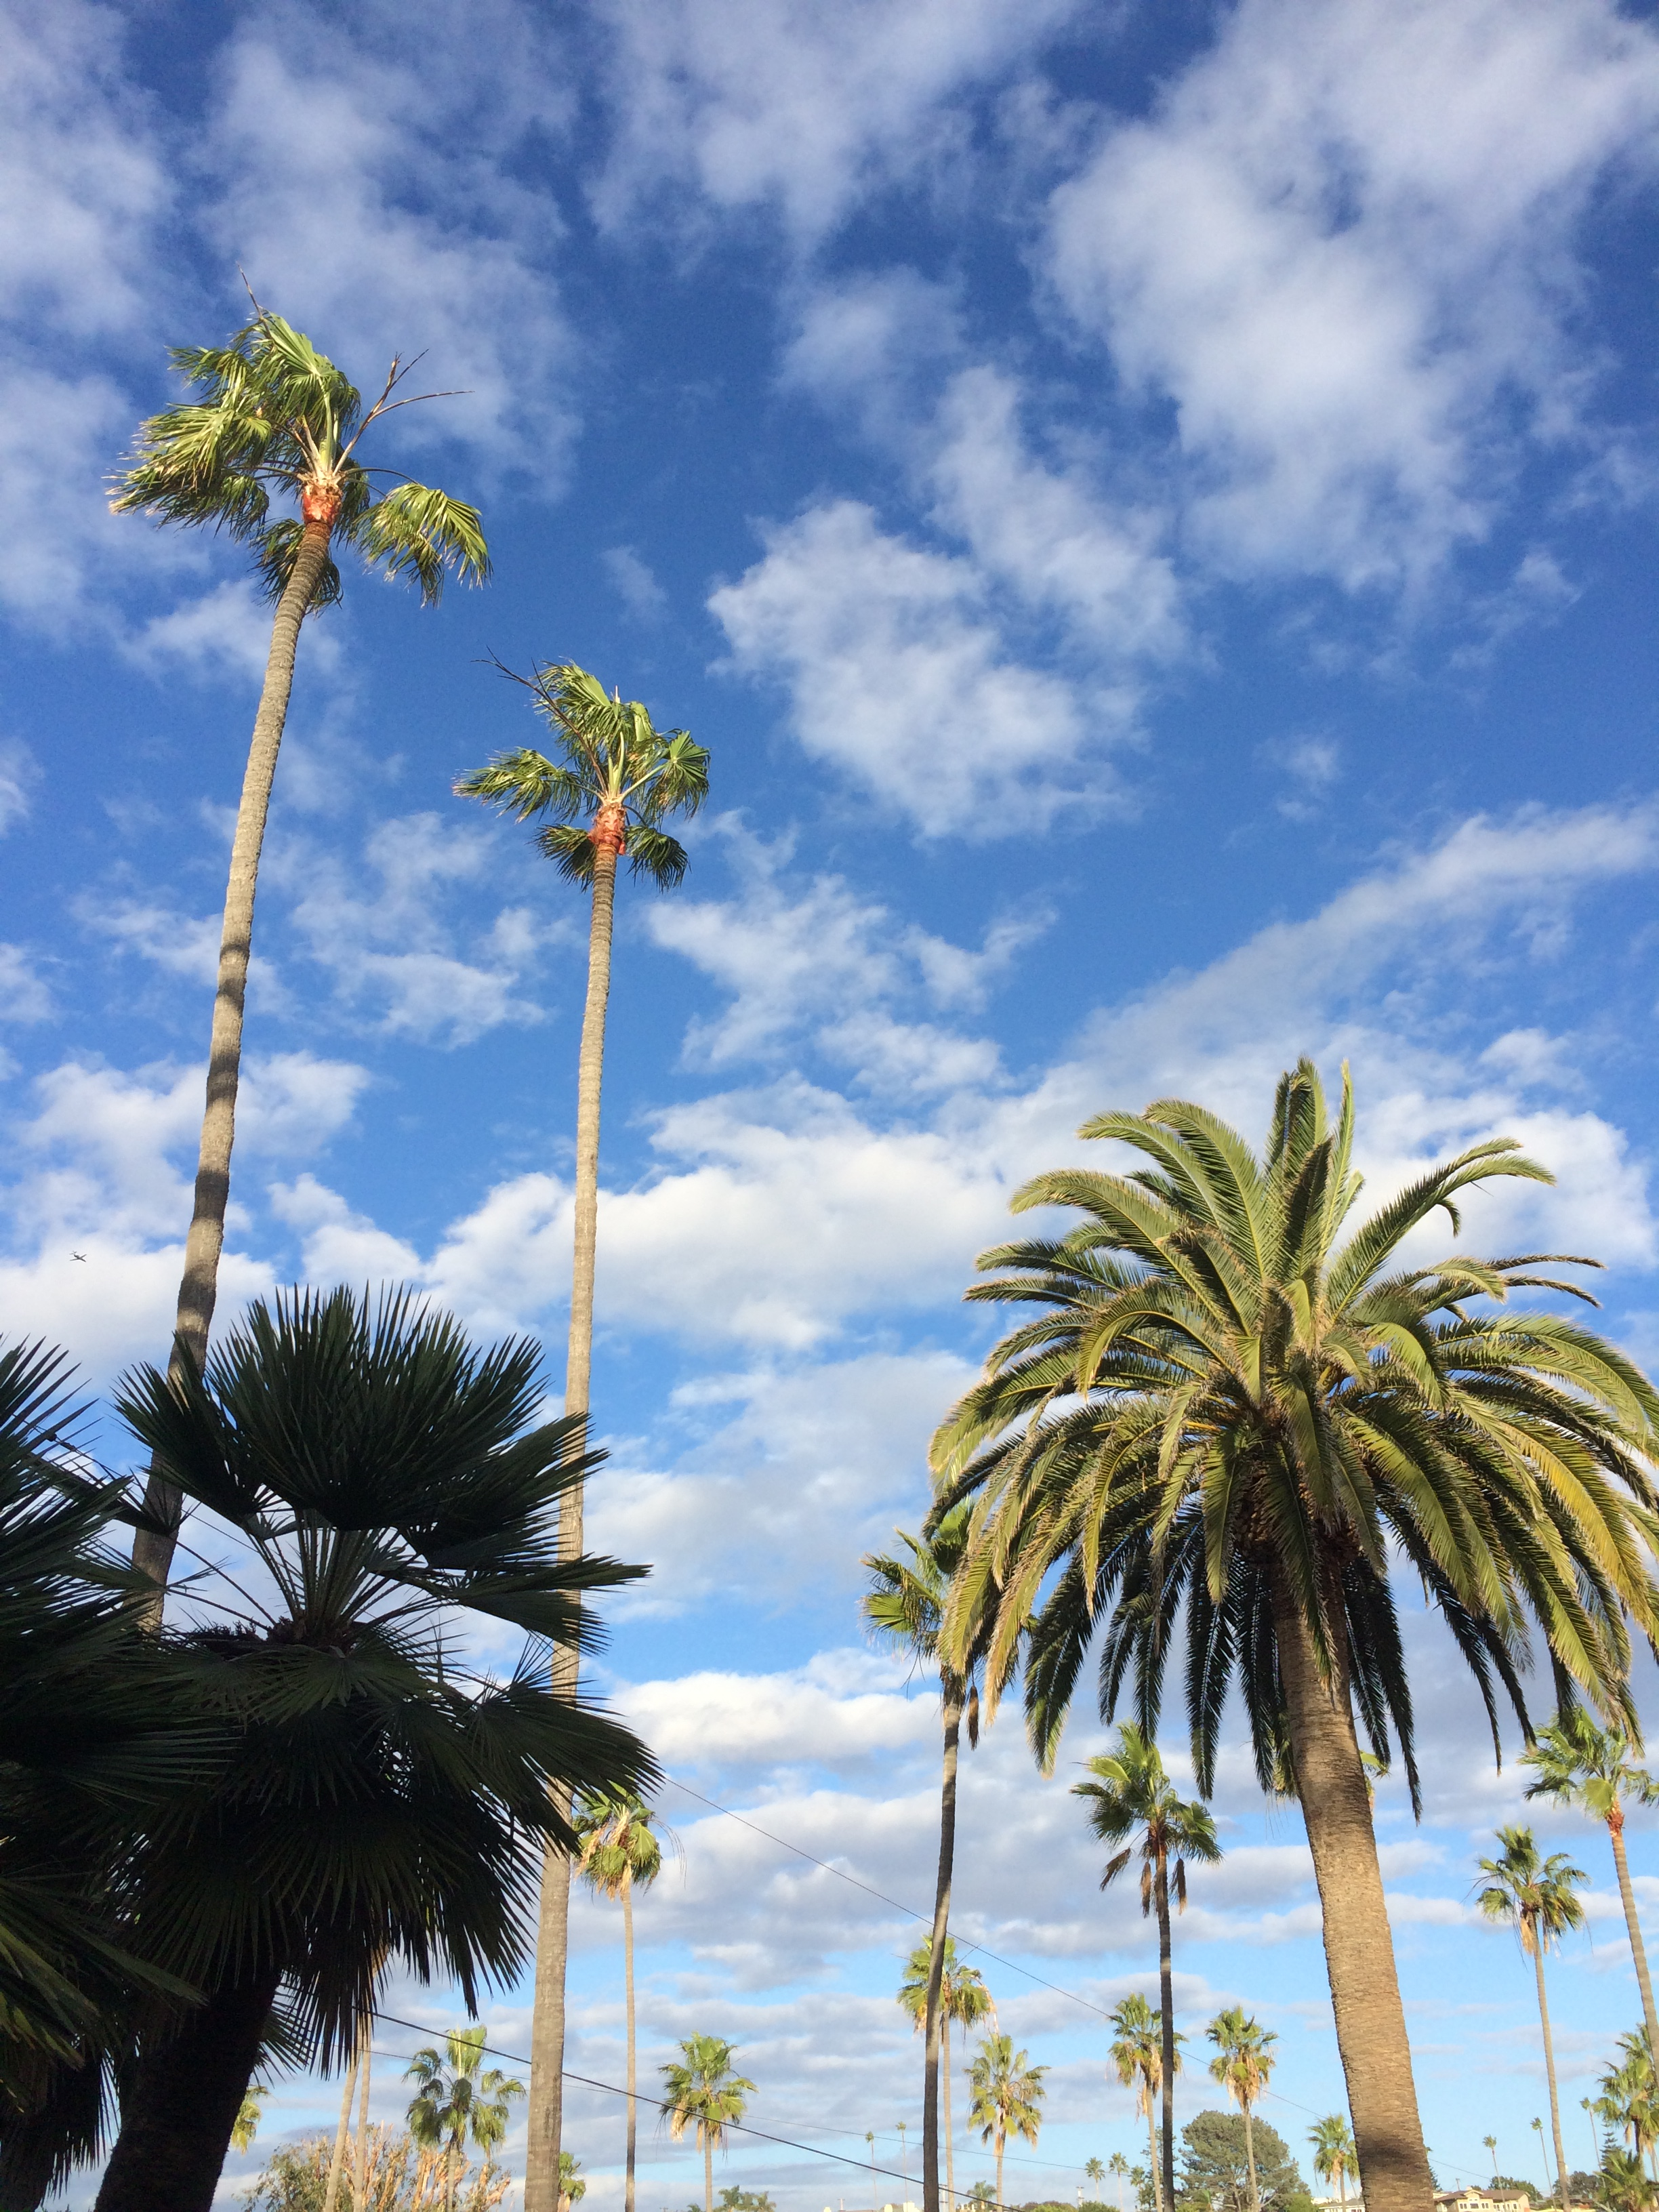 puffy clouds and palms